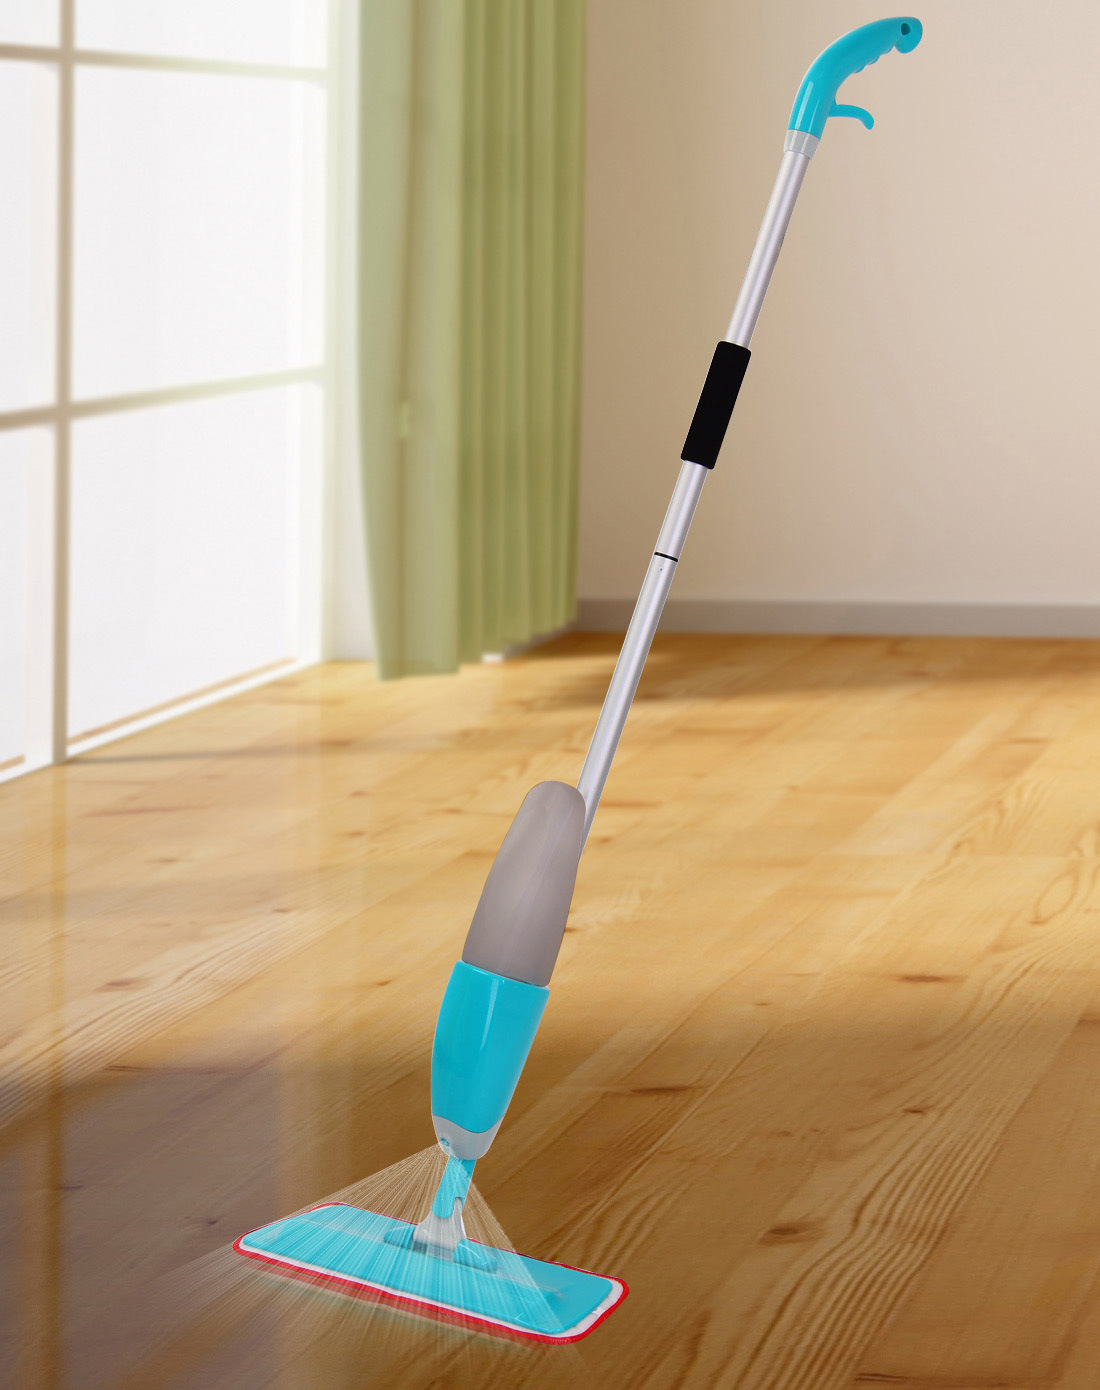 2017 Best Selling Microfiber Flat Floor Cleaning Spary Mop